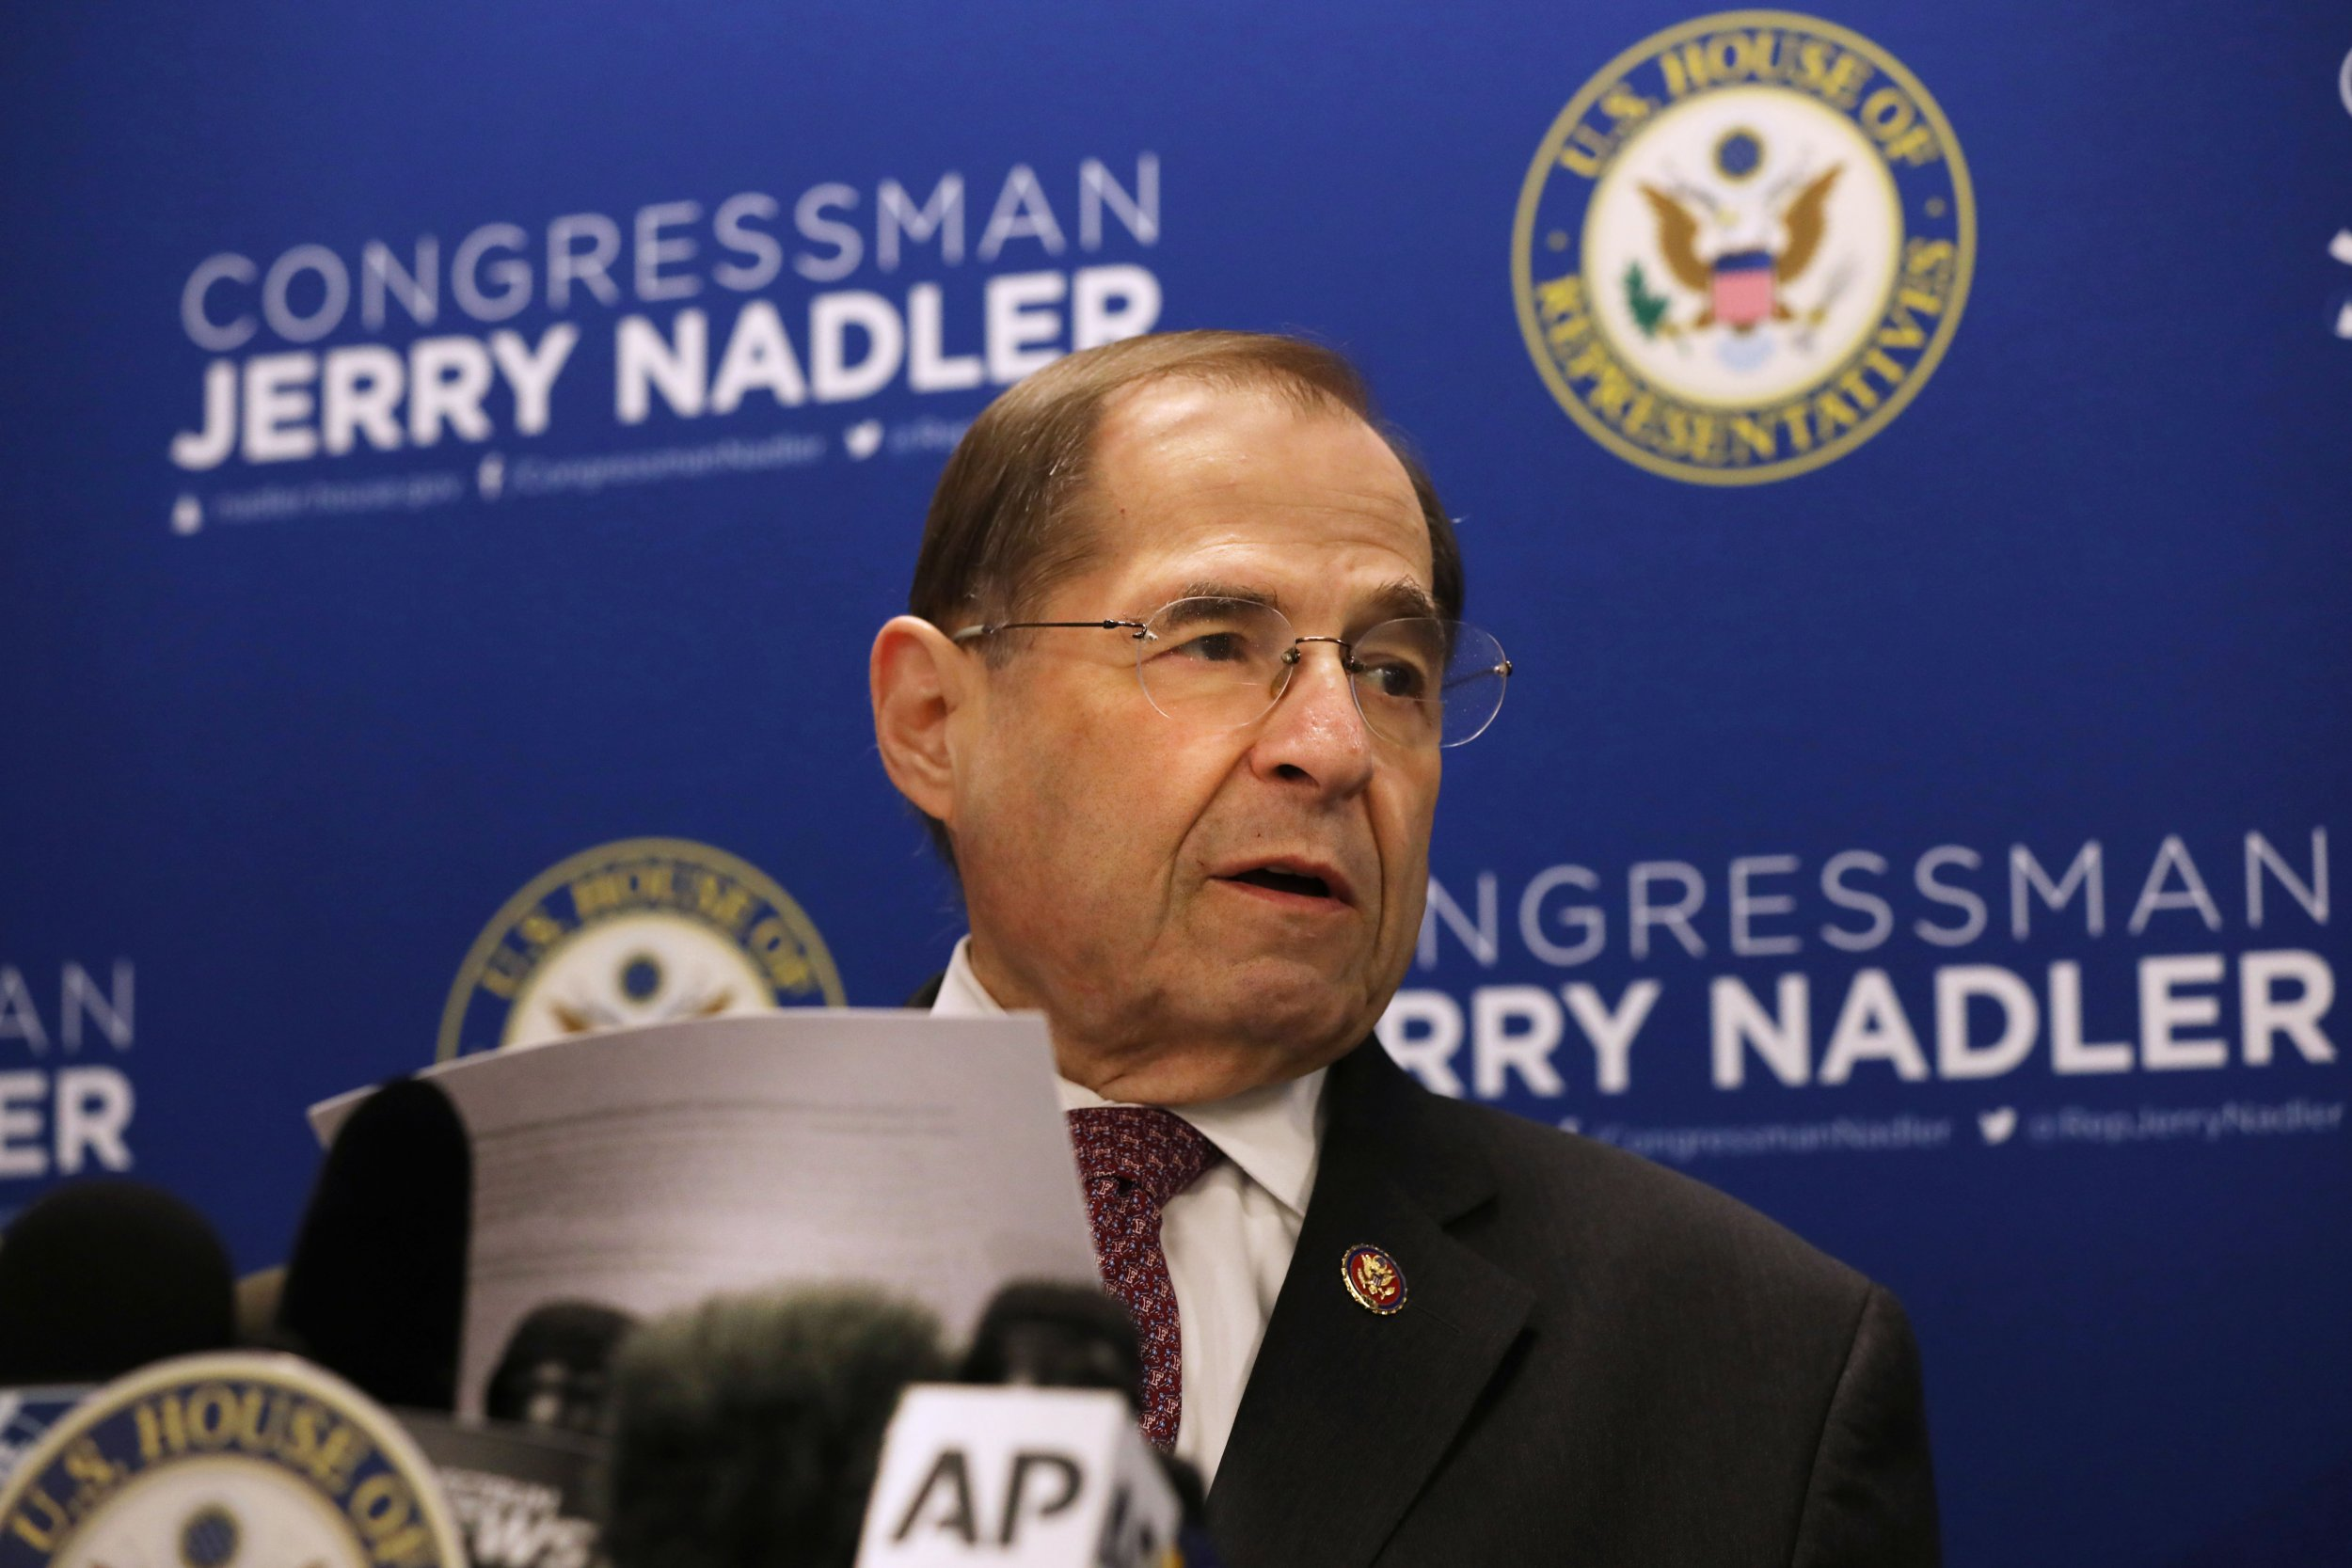 Jerry Nadler, Mueller report, Trump impeachment